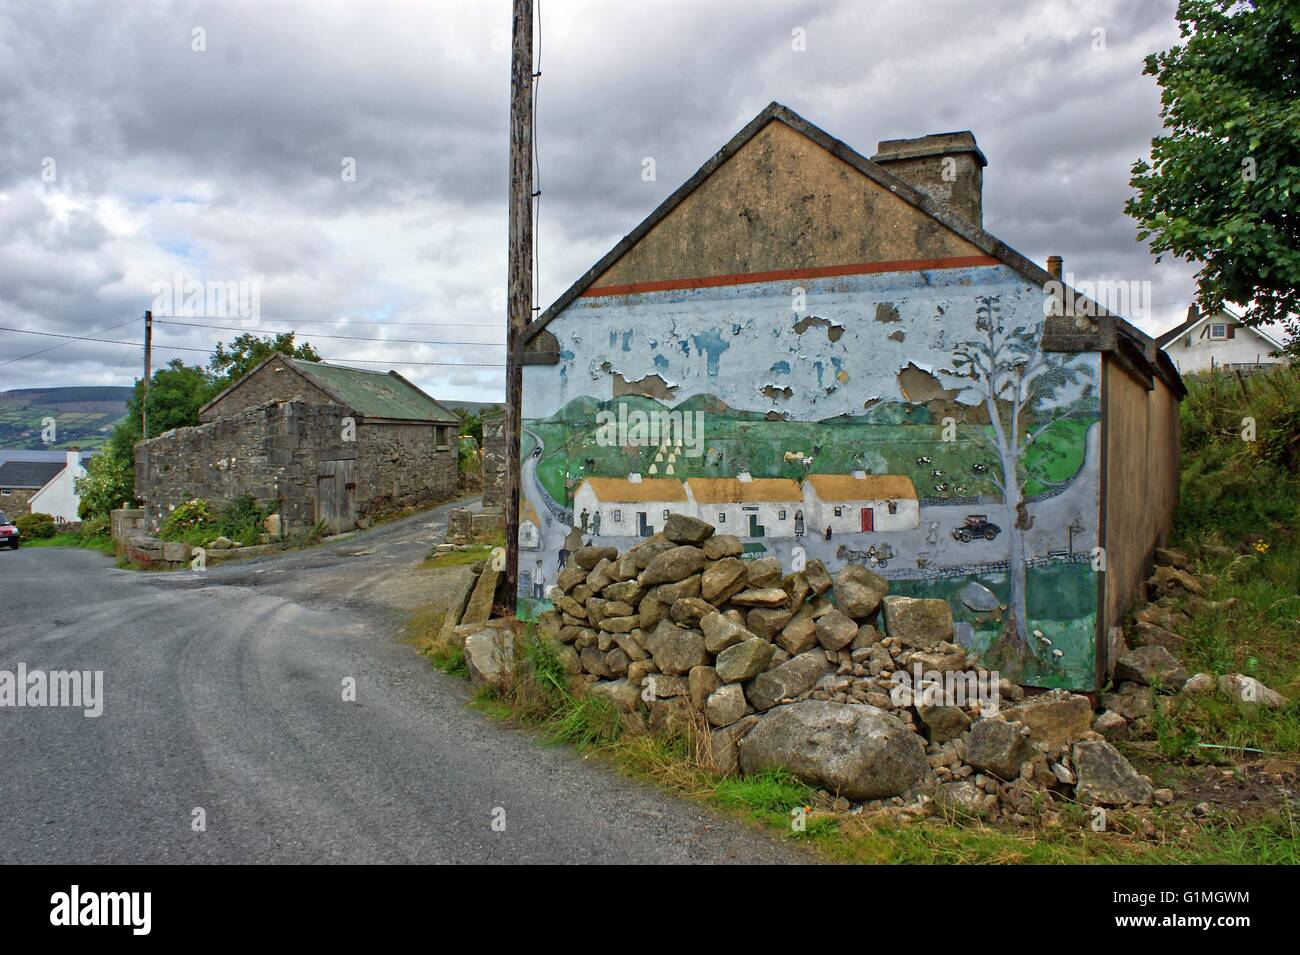 Old Painting Graffiti On A Stone Cottage In Ireland Showing Village Houses Front Rubble Of Stones Irish